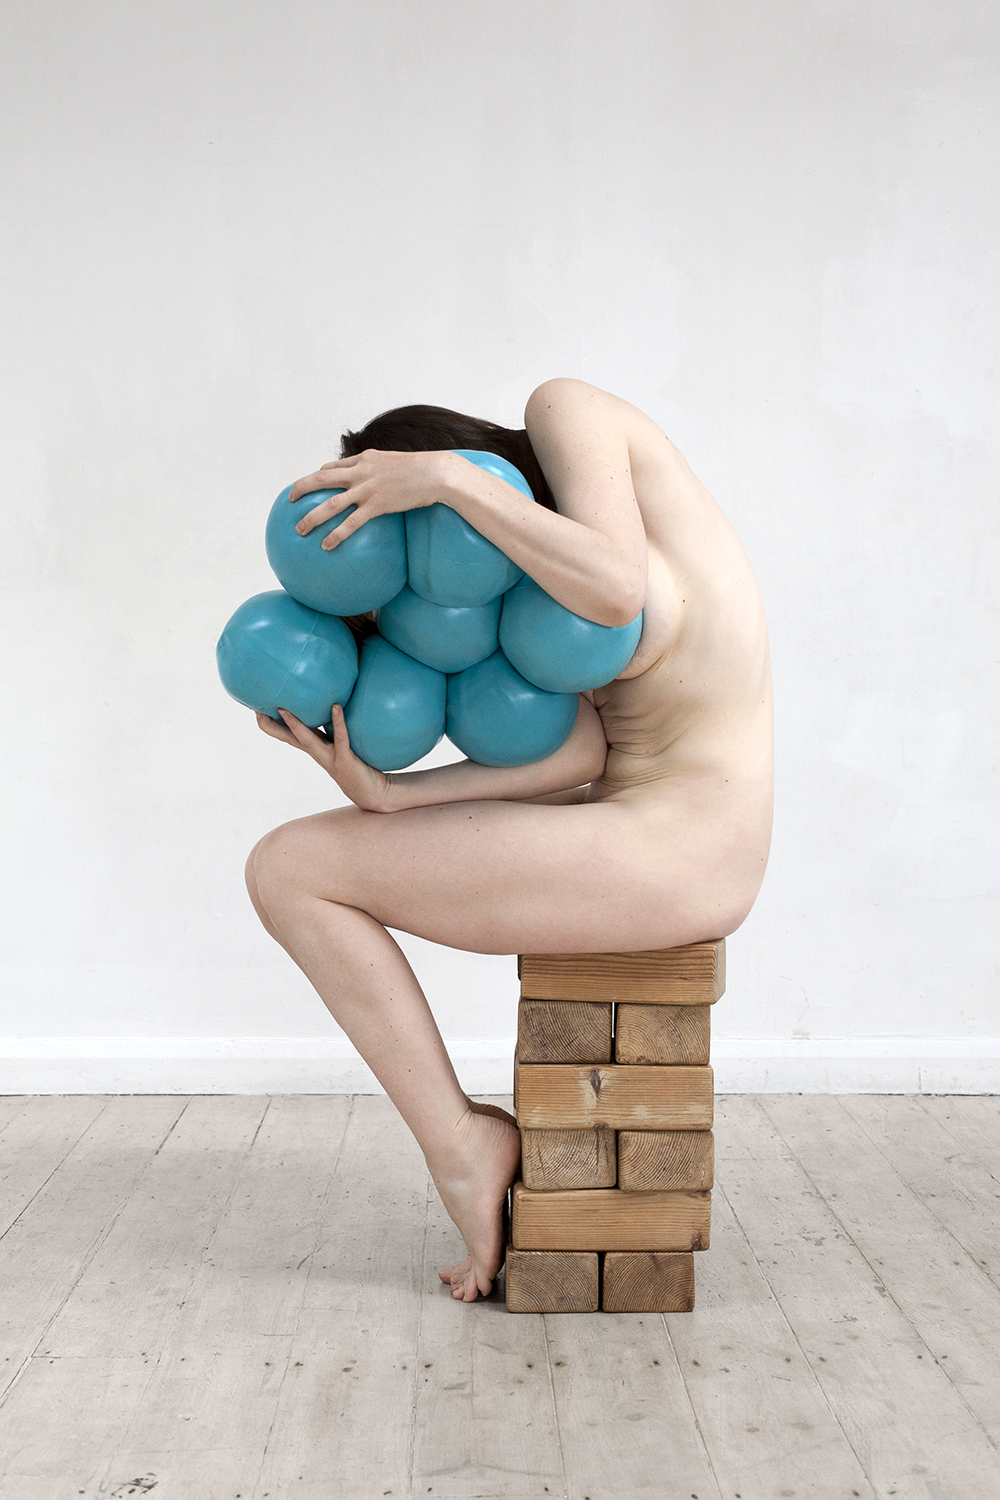 From the A Picture of Health exhibition, a naked woman clutches large squishy blue balls as she's sat on a stack of bricks hunched over